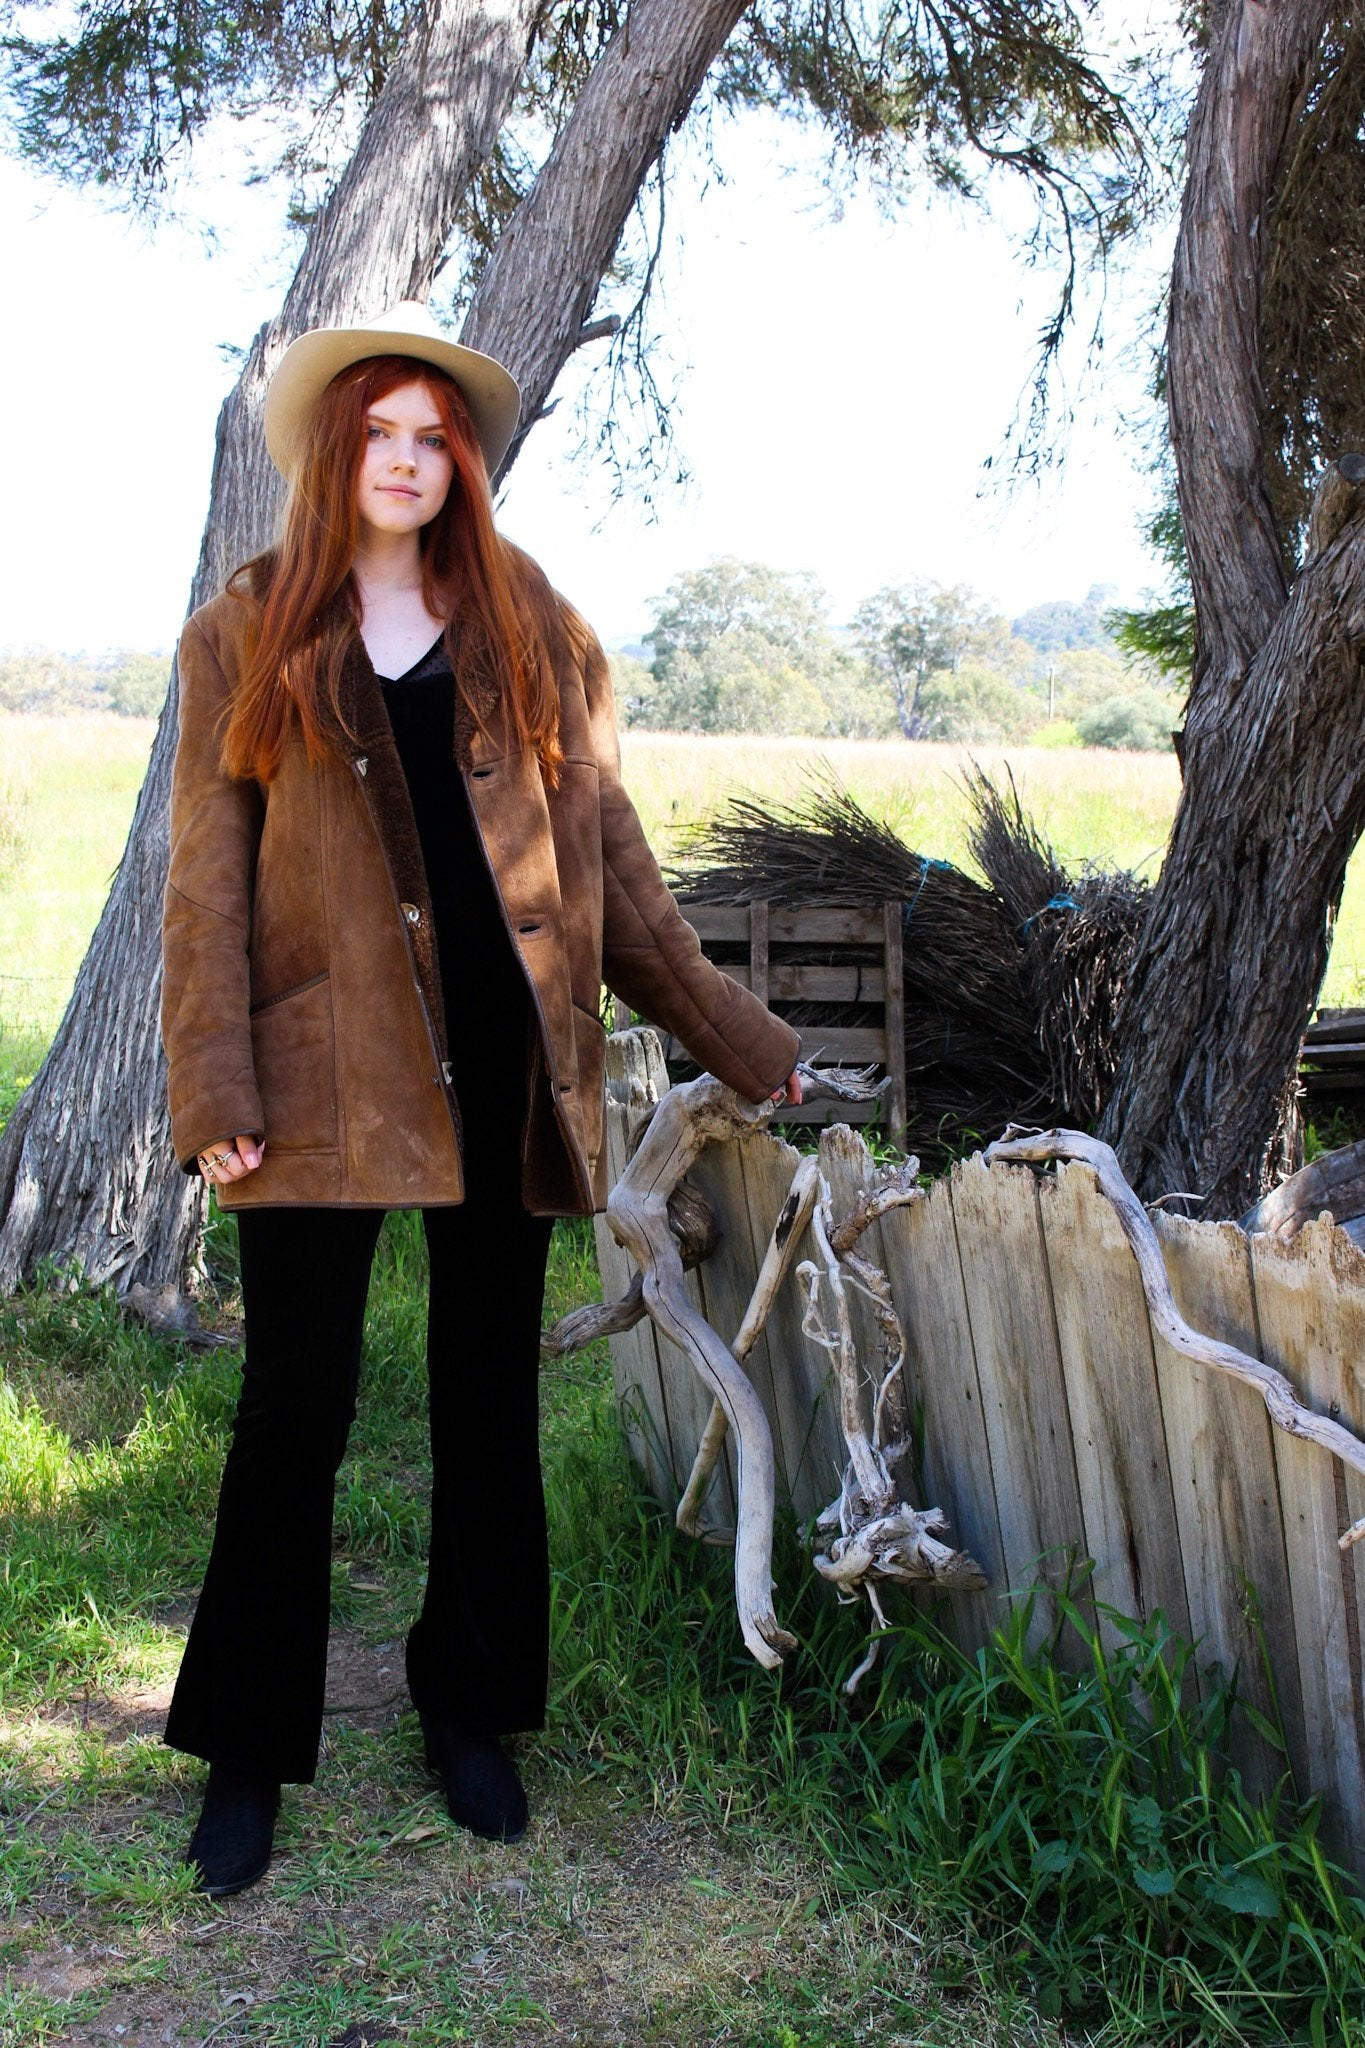 Shearling Afghan Coat - Sheepskin Penny Lane Coat - Almost Famous Sheepskin Jacket - Southwestern Jacket - Sheepskin Coat